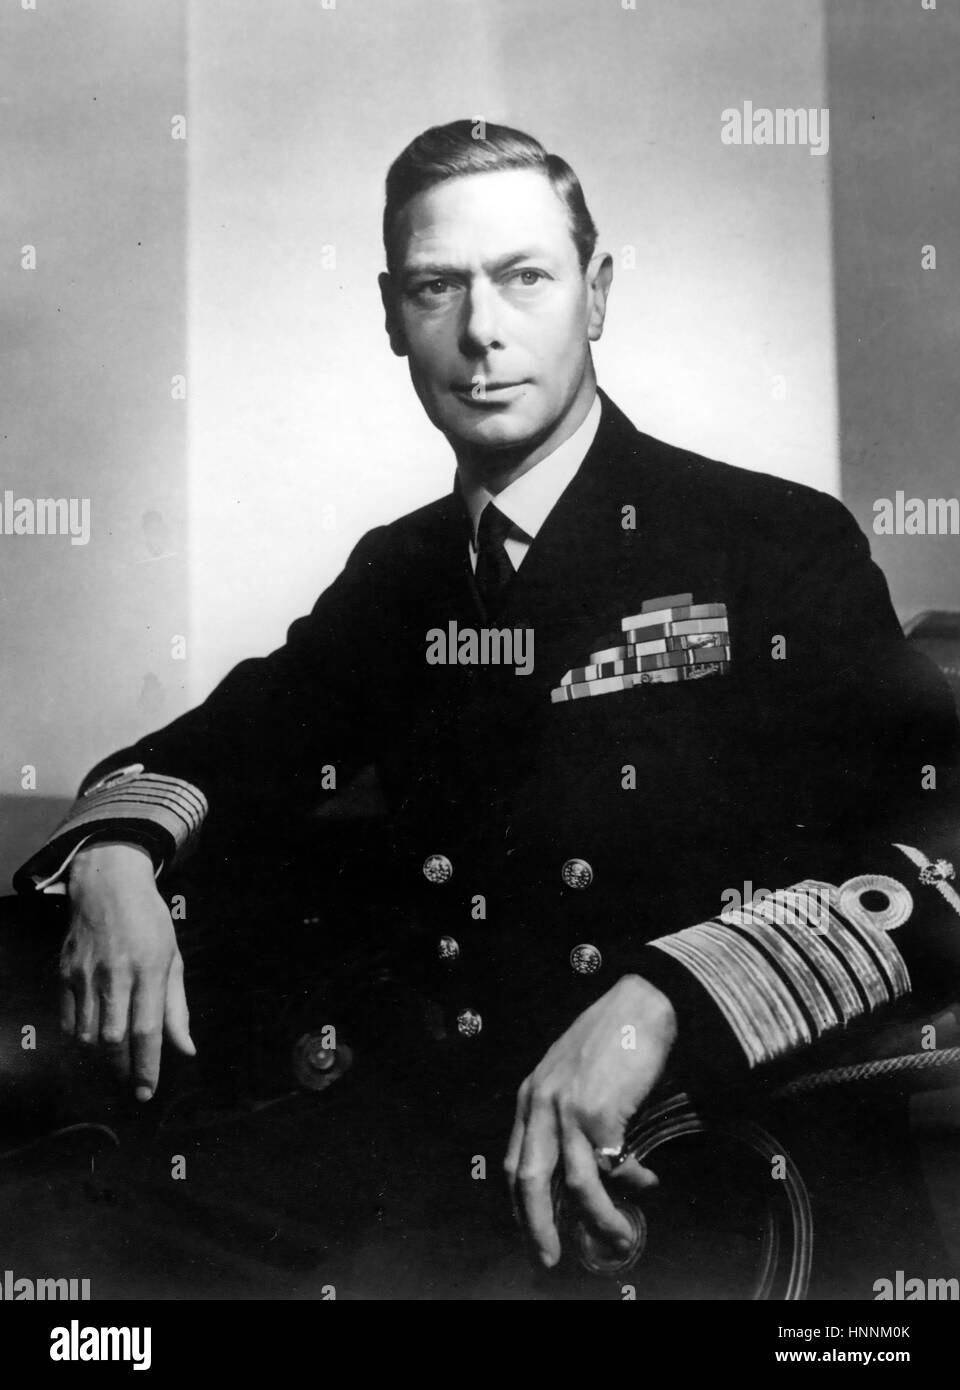 KING GEORGE VI (1895-1952) in the uniform of Admiral of the Fleet about 1945 Stock Photo